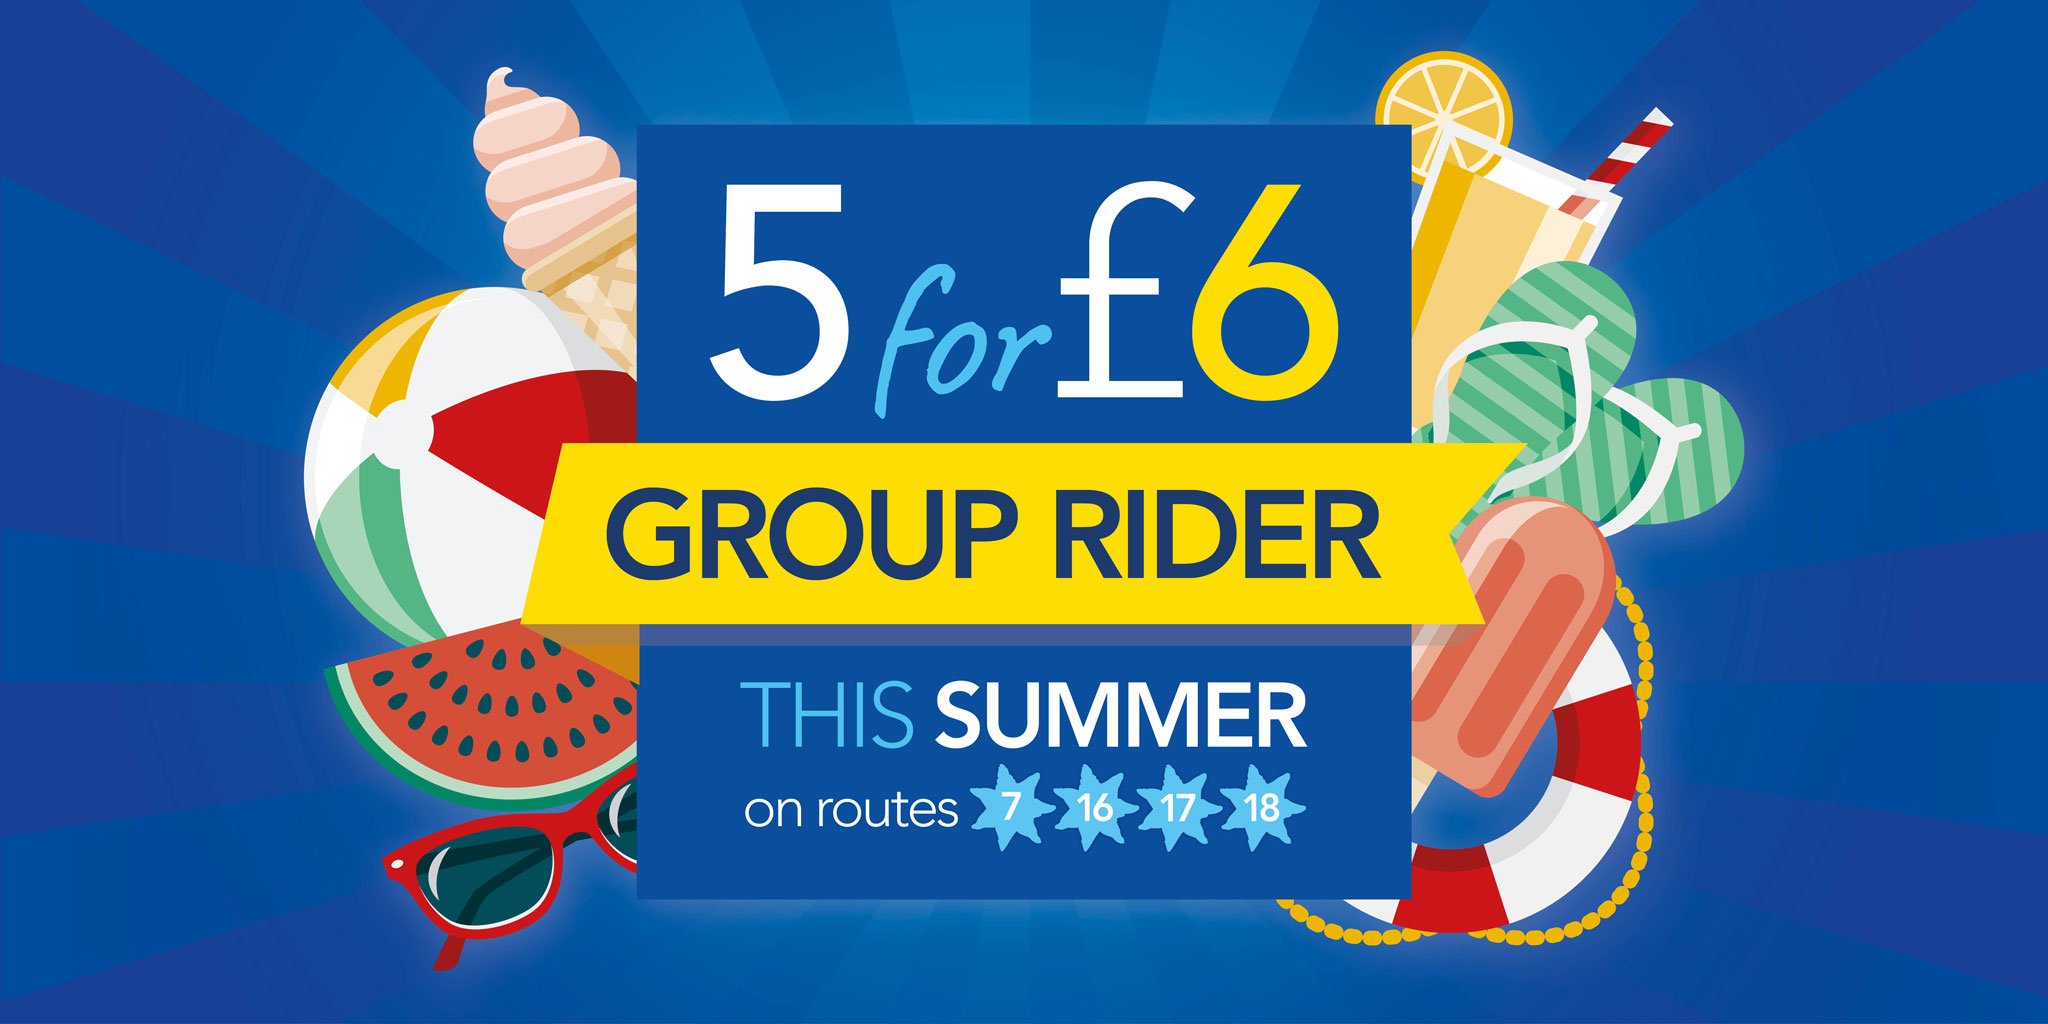 5 for £6 group dayrider ticket this summer